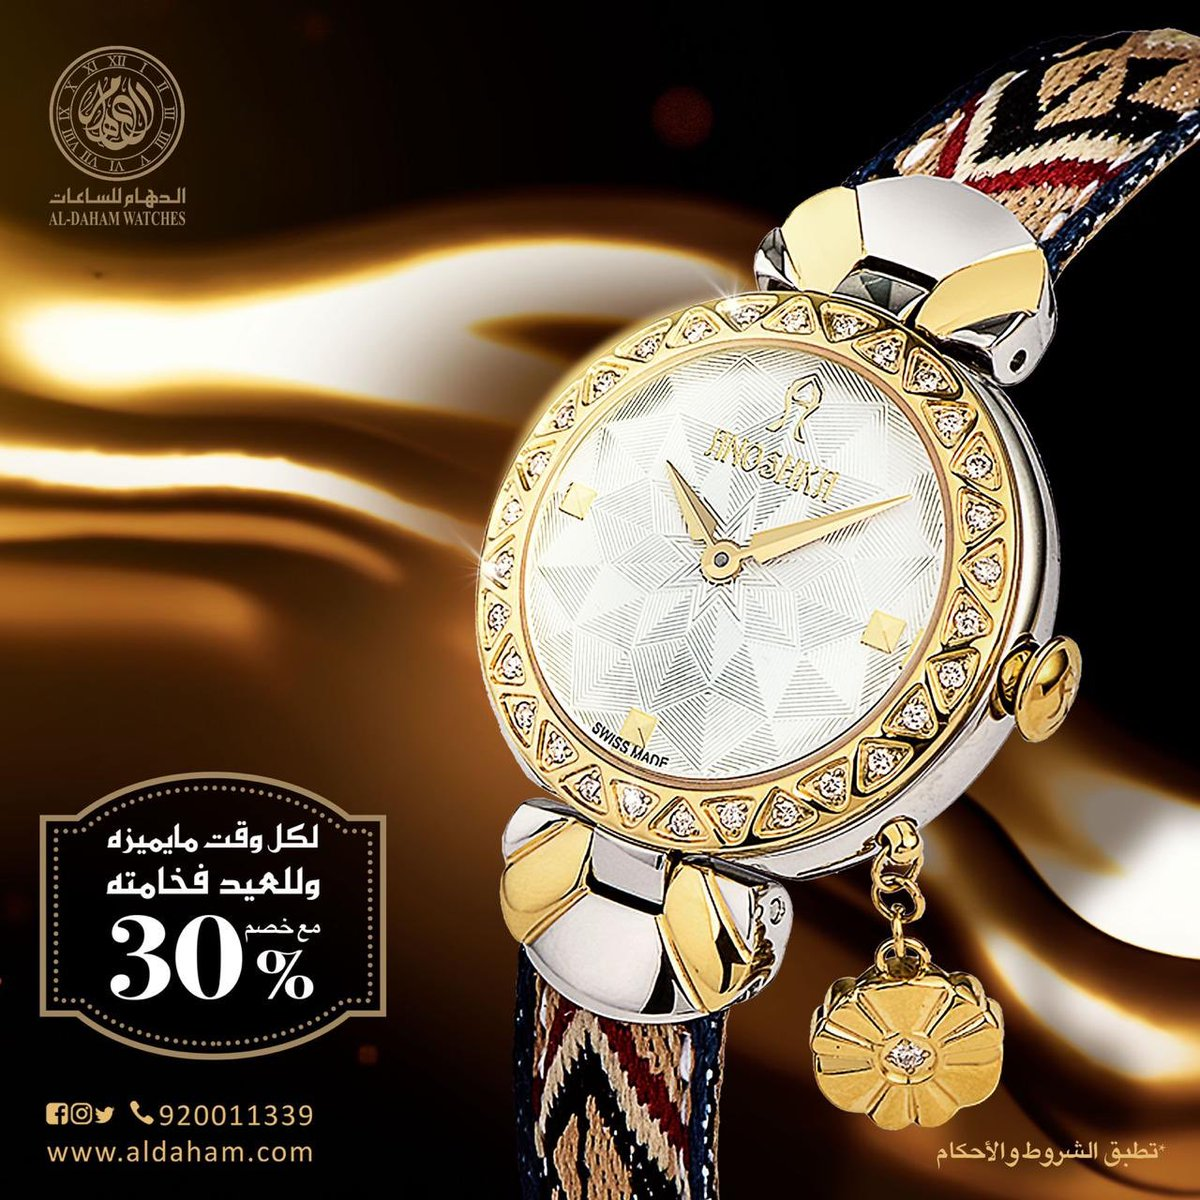 b61ec3ec3593e الدهام للساعات ( ALDAHAM WATCHES)